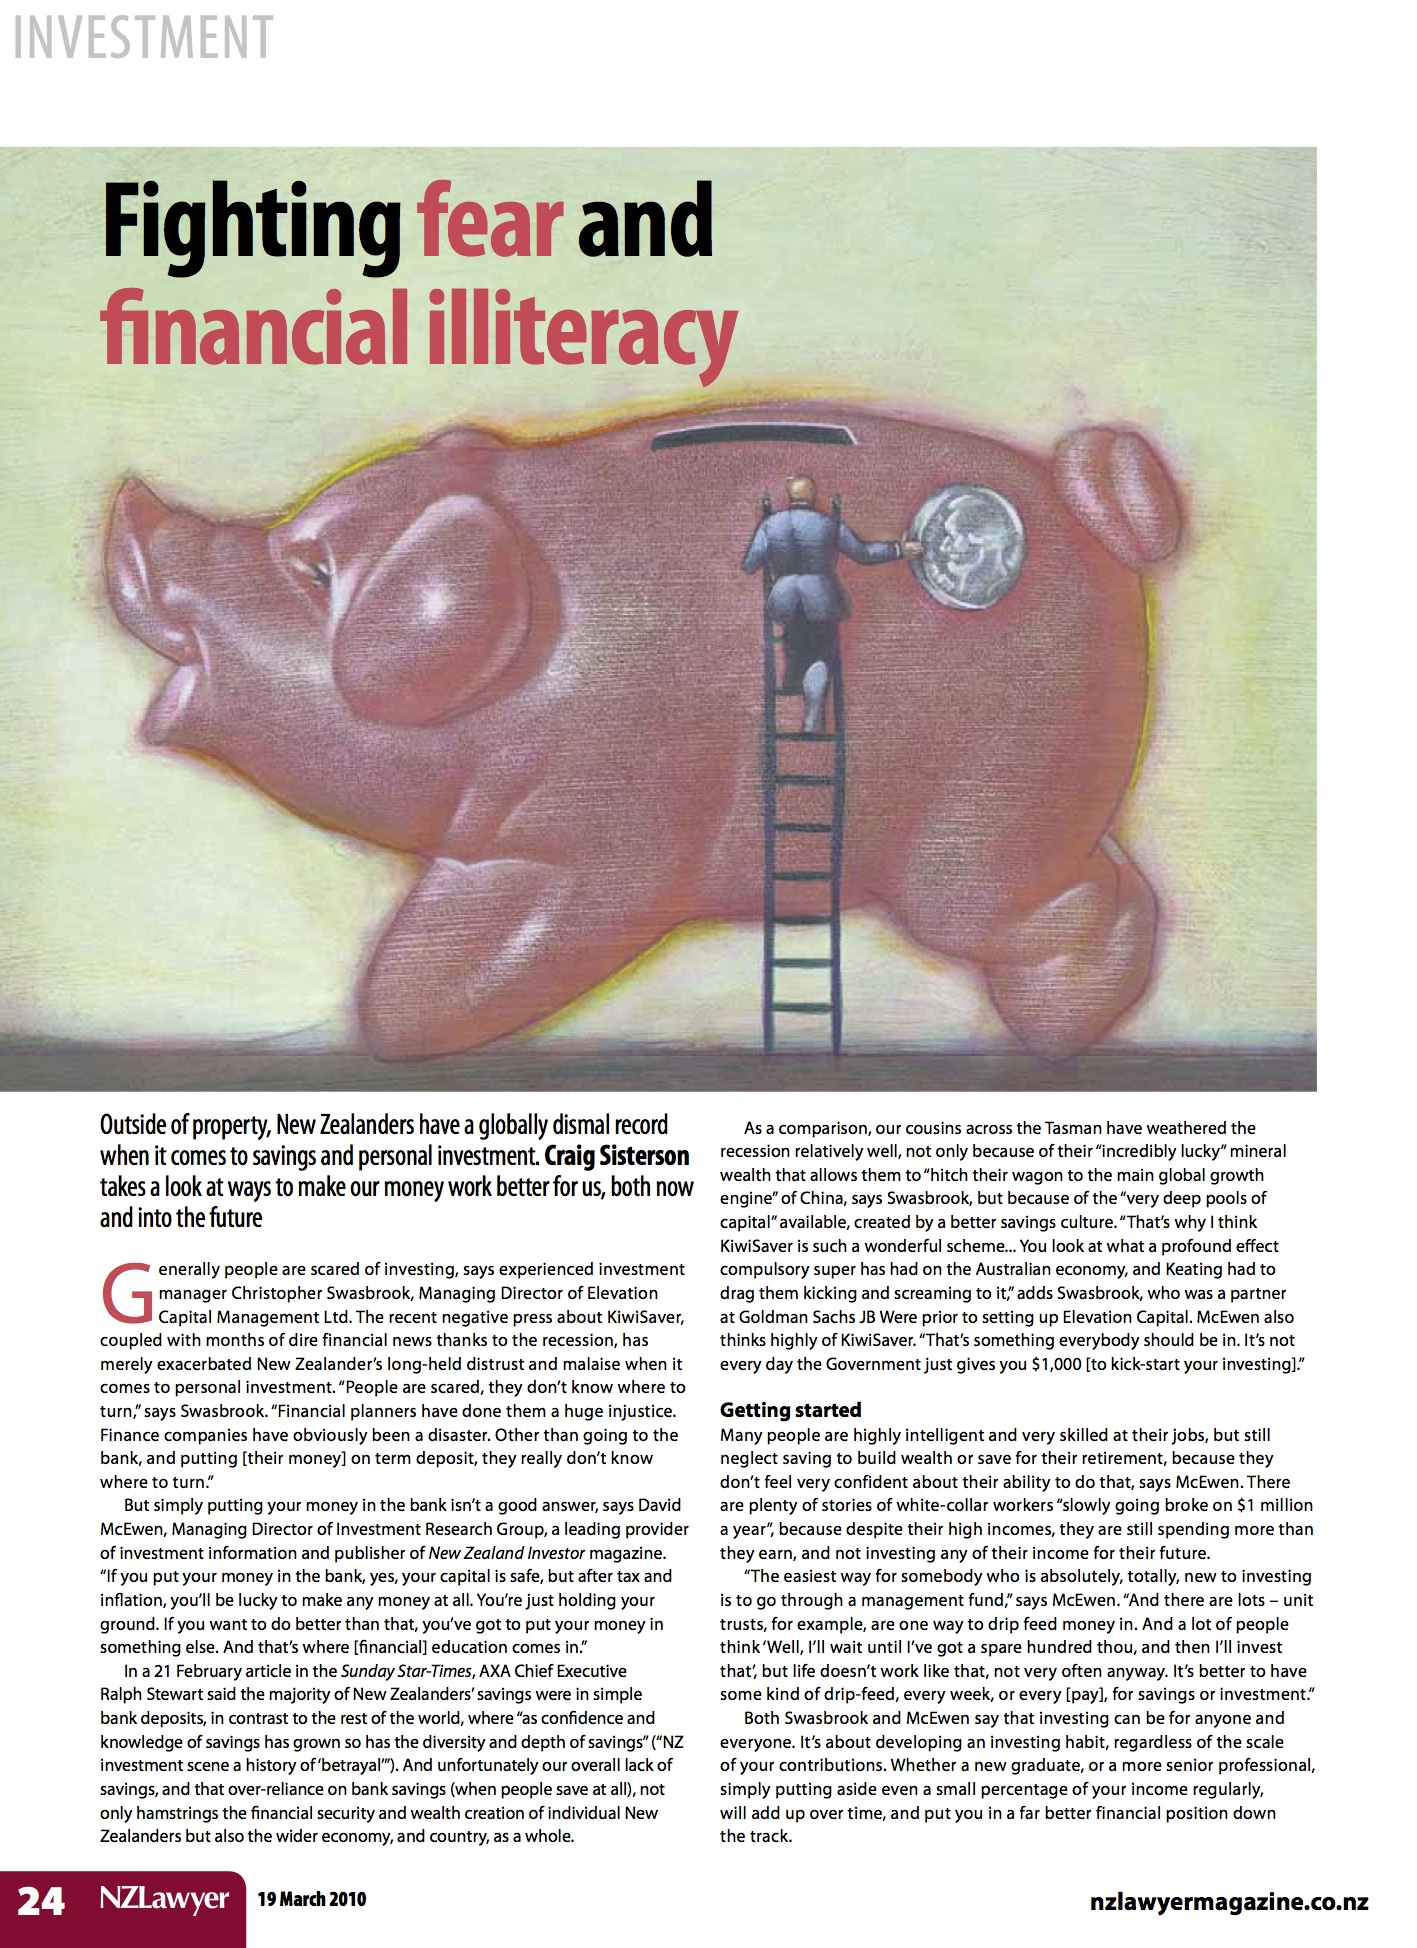 NZLawyer issue 132 Investment article.jpg